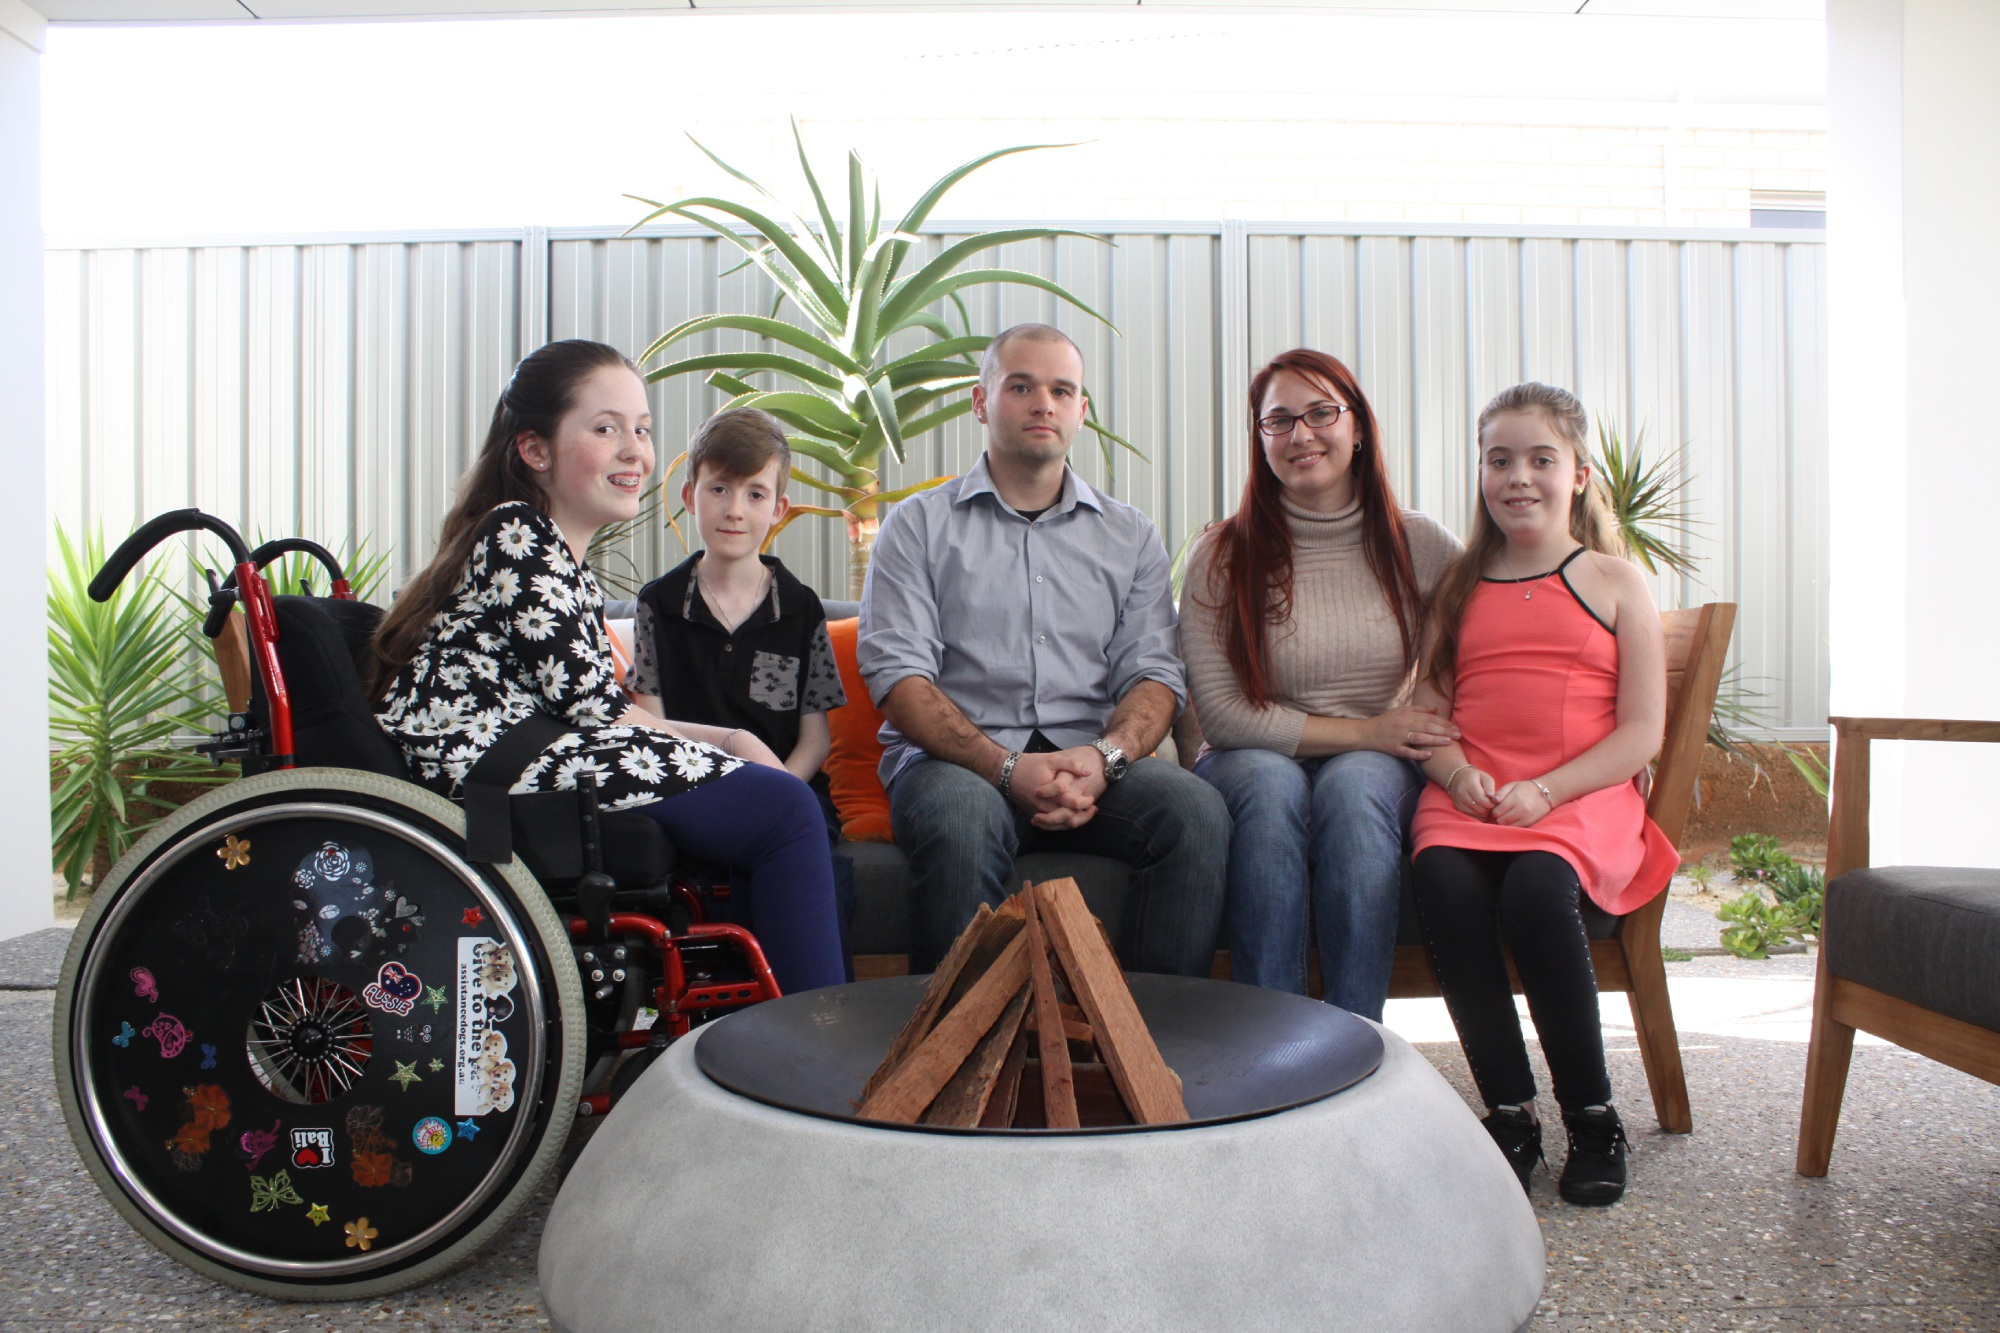 Still feeling shell shocked, Robbie Hobson took some time out with Lottery of Choice ambassadors, the Topham children who all have Muscular Dystrophy: Jamie Topham (12), Scott (8) Robbie Hobson, Terri Wagner and Hayley (10) Topham.